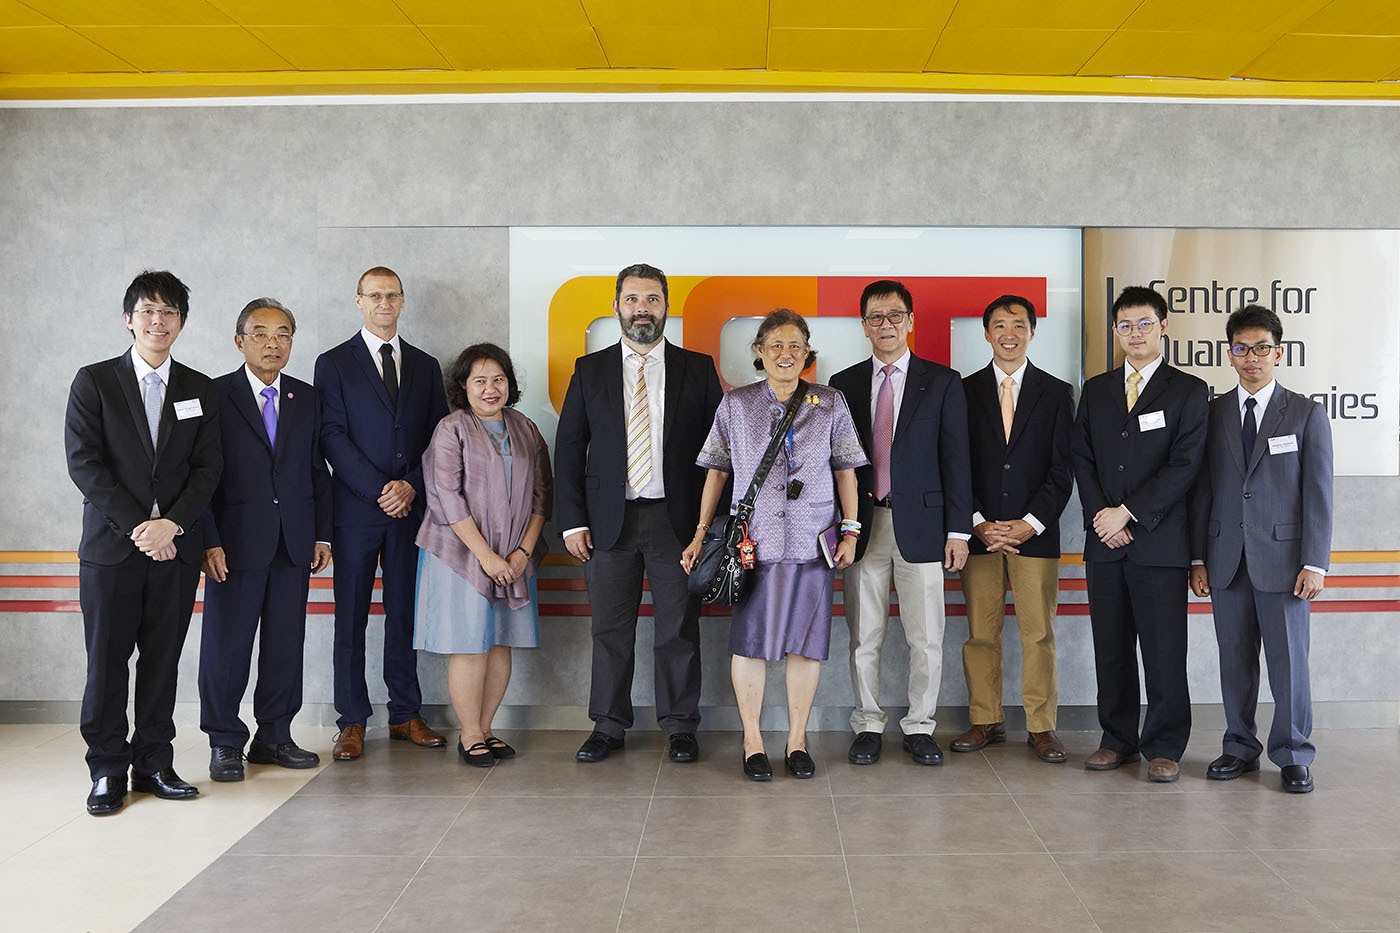 HRH Princess Sirindhorn visits the Centre for Quantum Technologies, Singapore